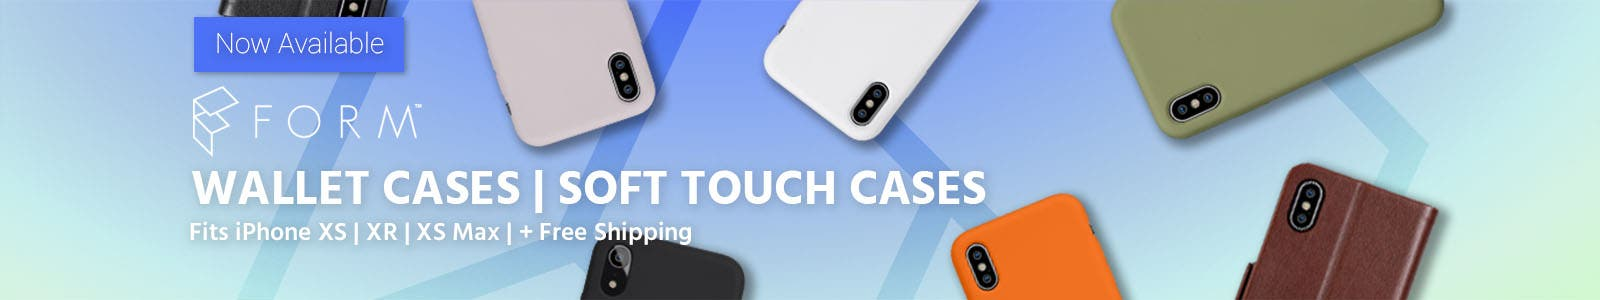 FORM, wallet cases, soft touch cases, fits iphone xs, xr, xs max, plus free shipping